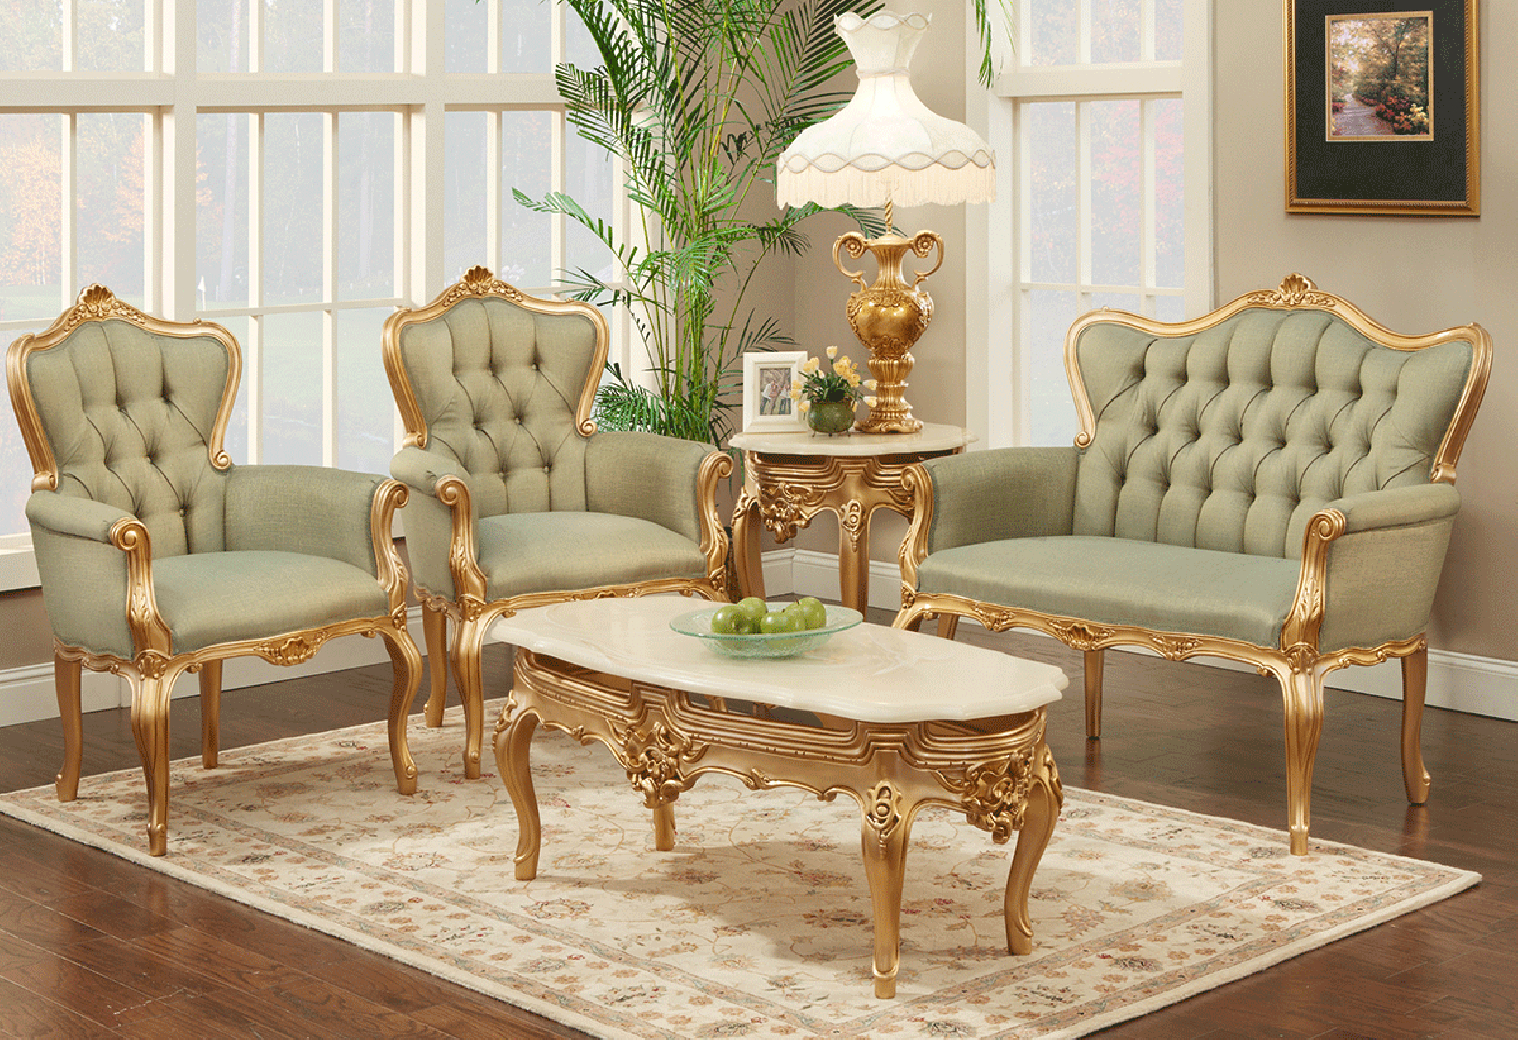 770 BJ Solid Velvet Polrey French Provincial Style Living Room Set